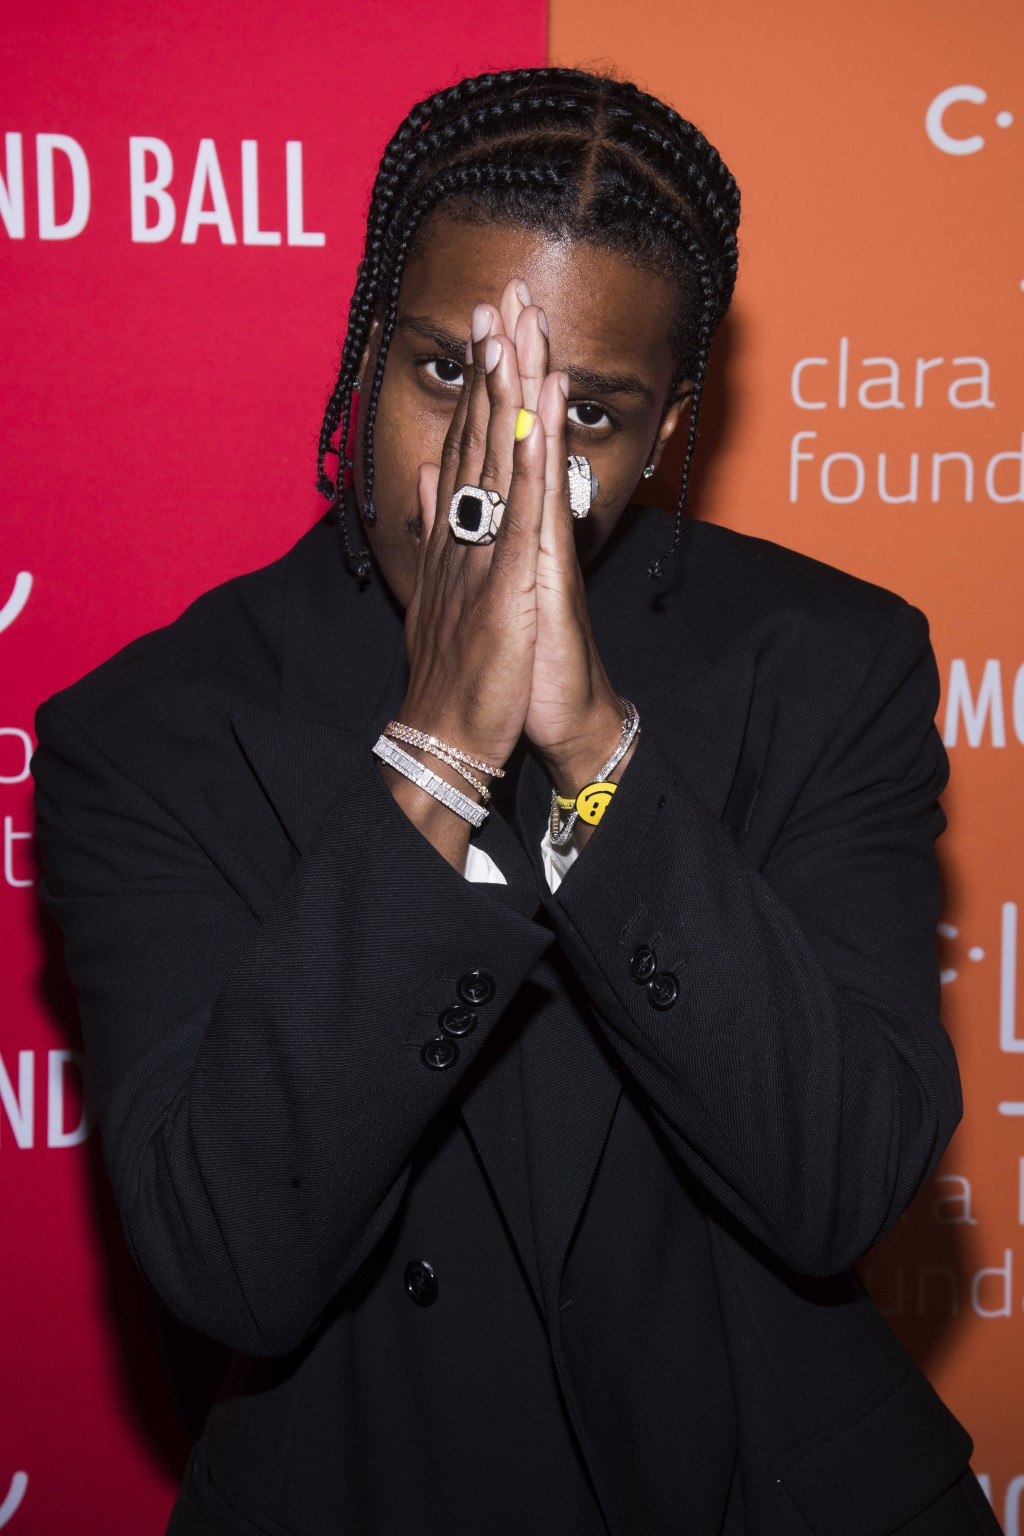 A$AP Rocky attends the 5th annual Diamond Ball benefit gala at Cipriani Wall Street on Thursday, Sept. 12, 2019, in New York. (Photo by Charles Sykes/